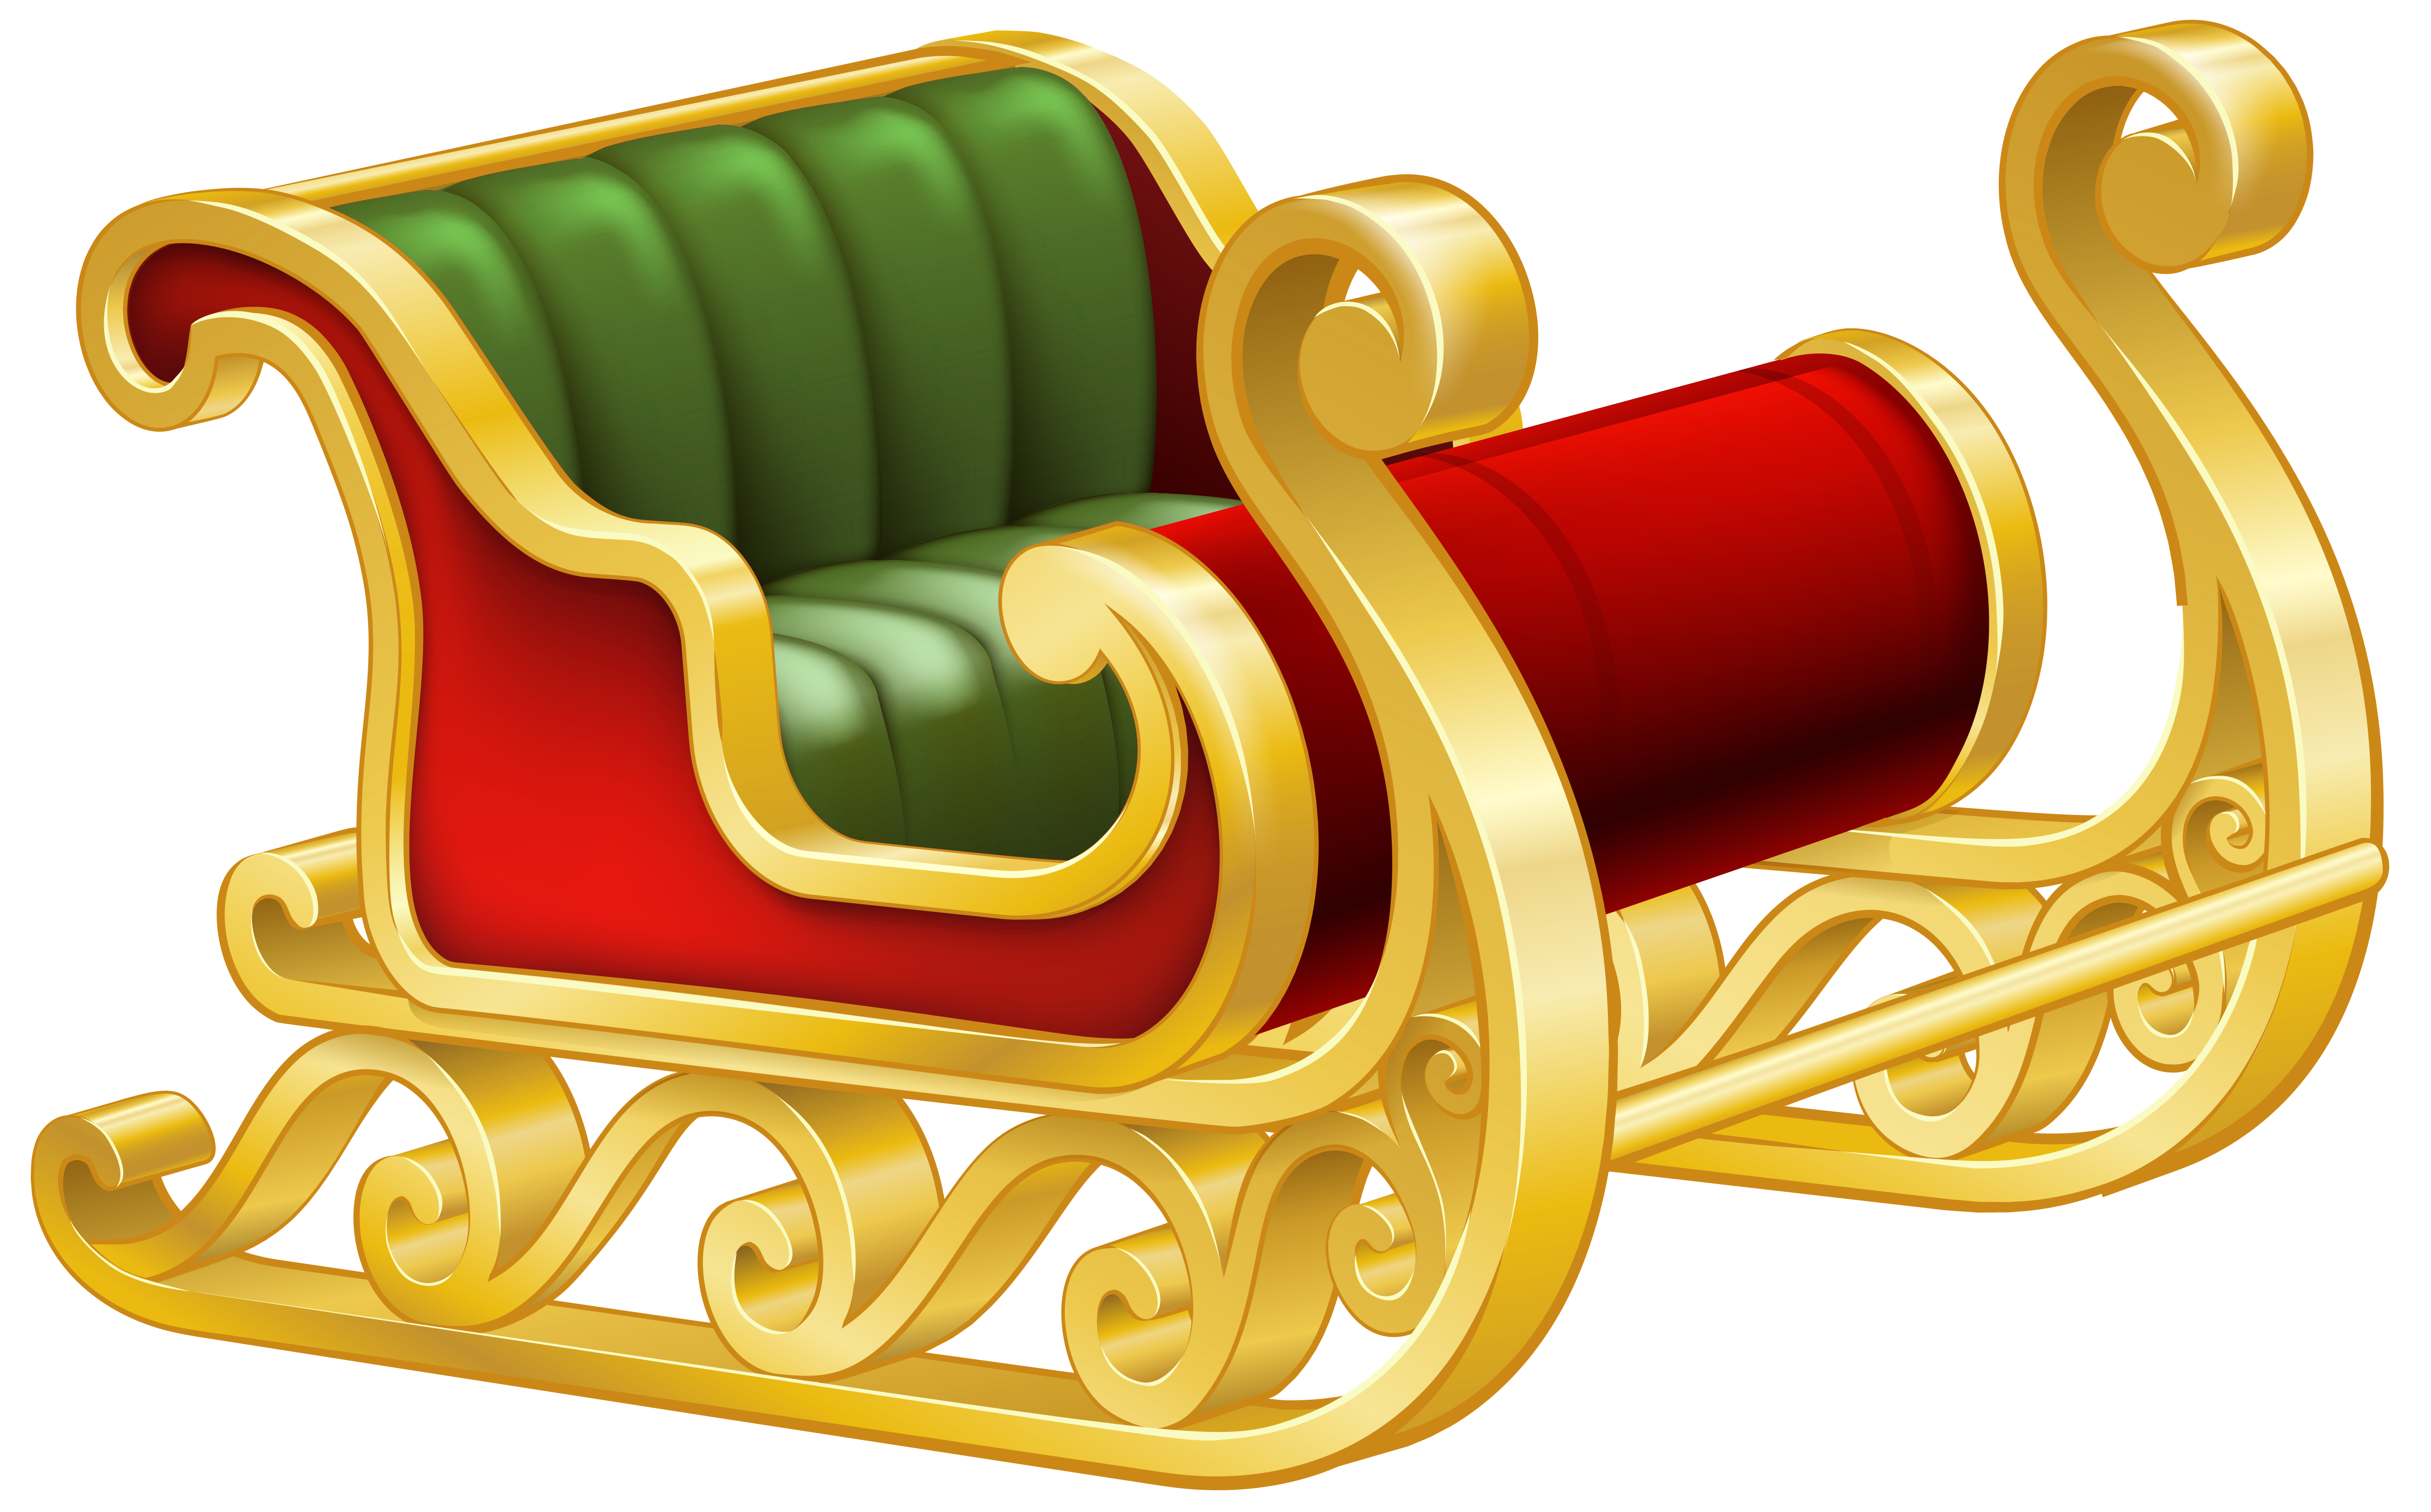 Heaven clipart all things bright and beautiful. Santa sleigh png clip